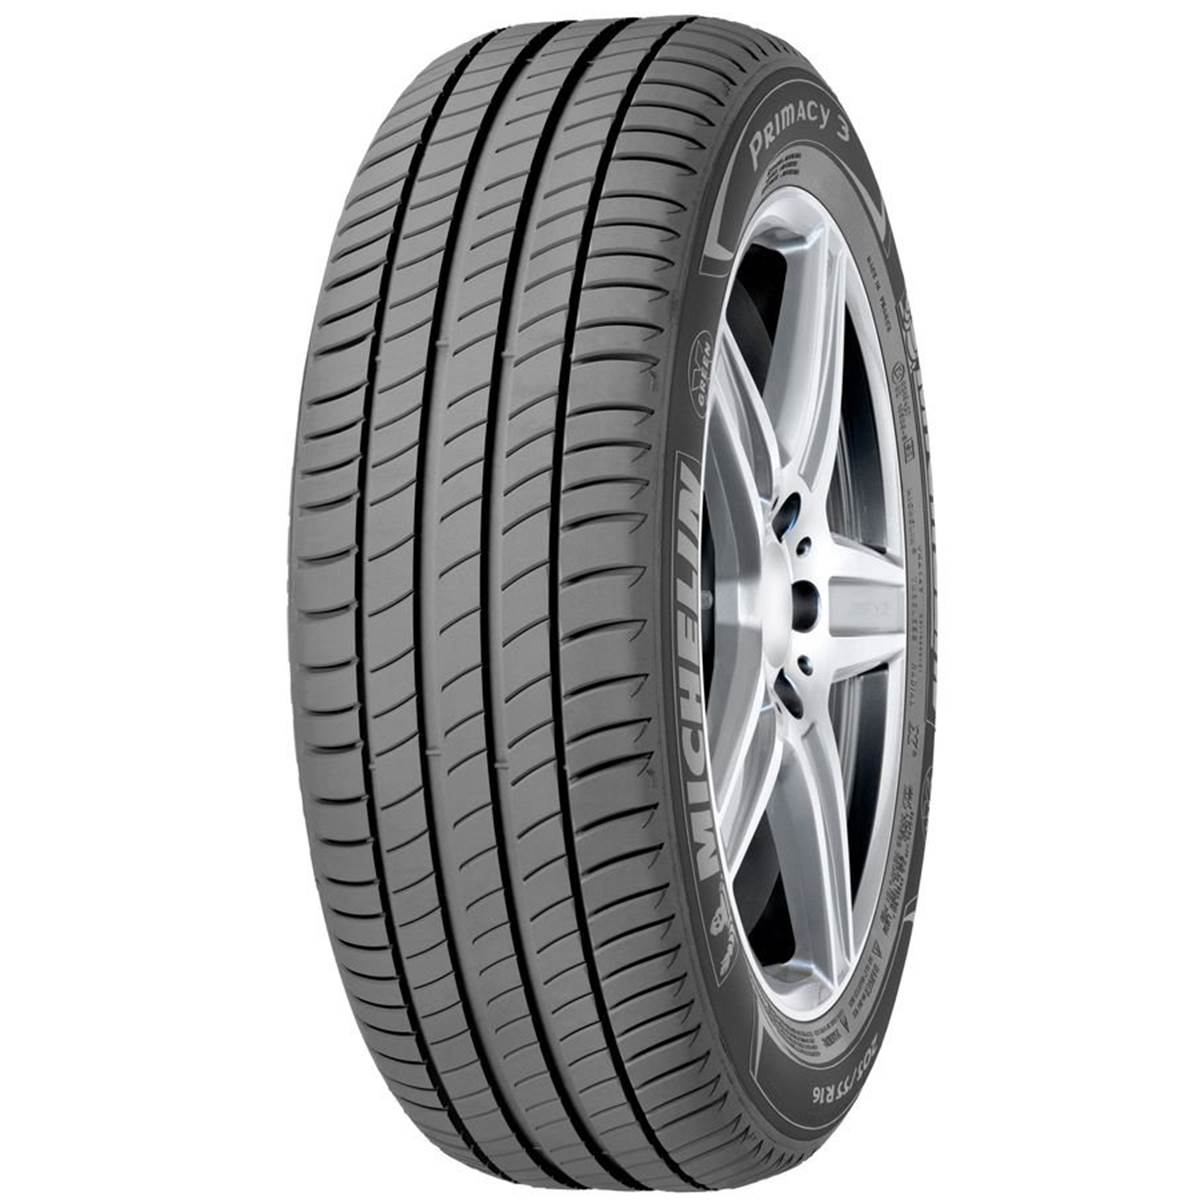 Pneu Michelin 205/50R17 89W Primacy 3